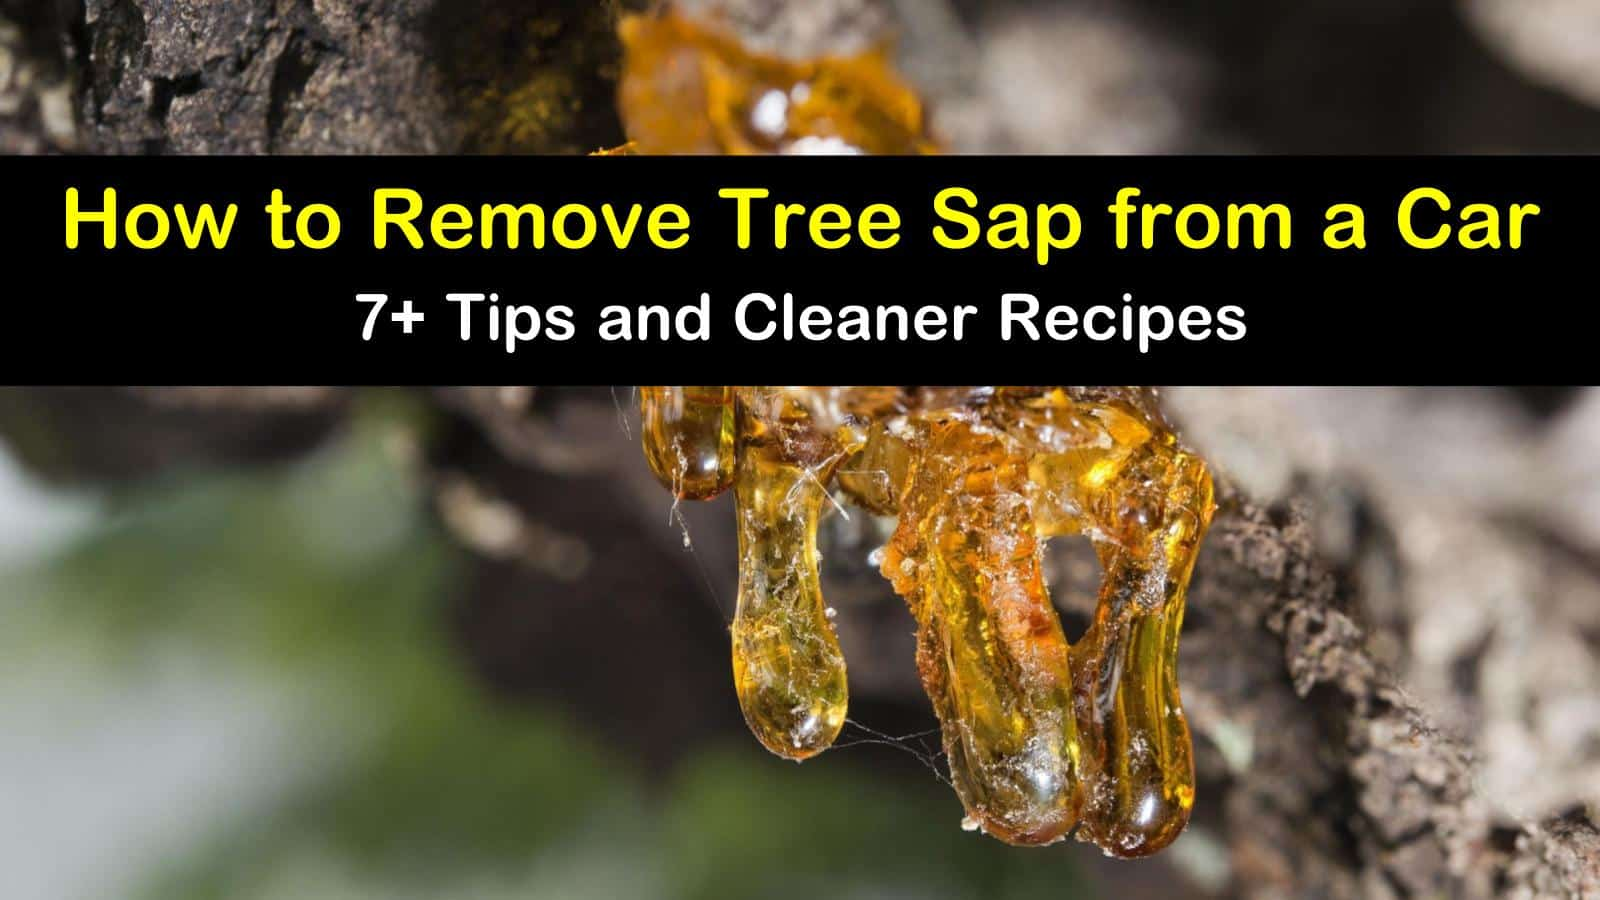 how to remove tree sap from a car titleimg1